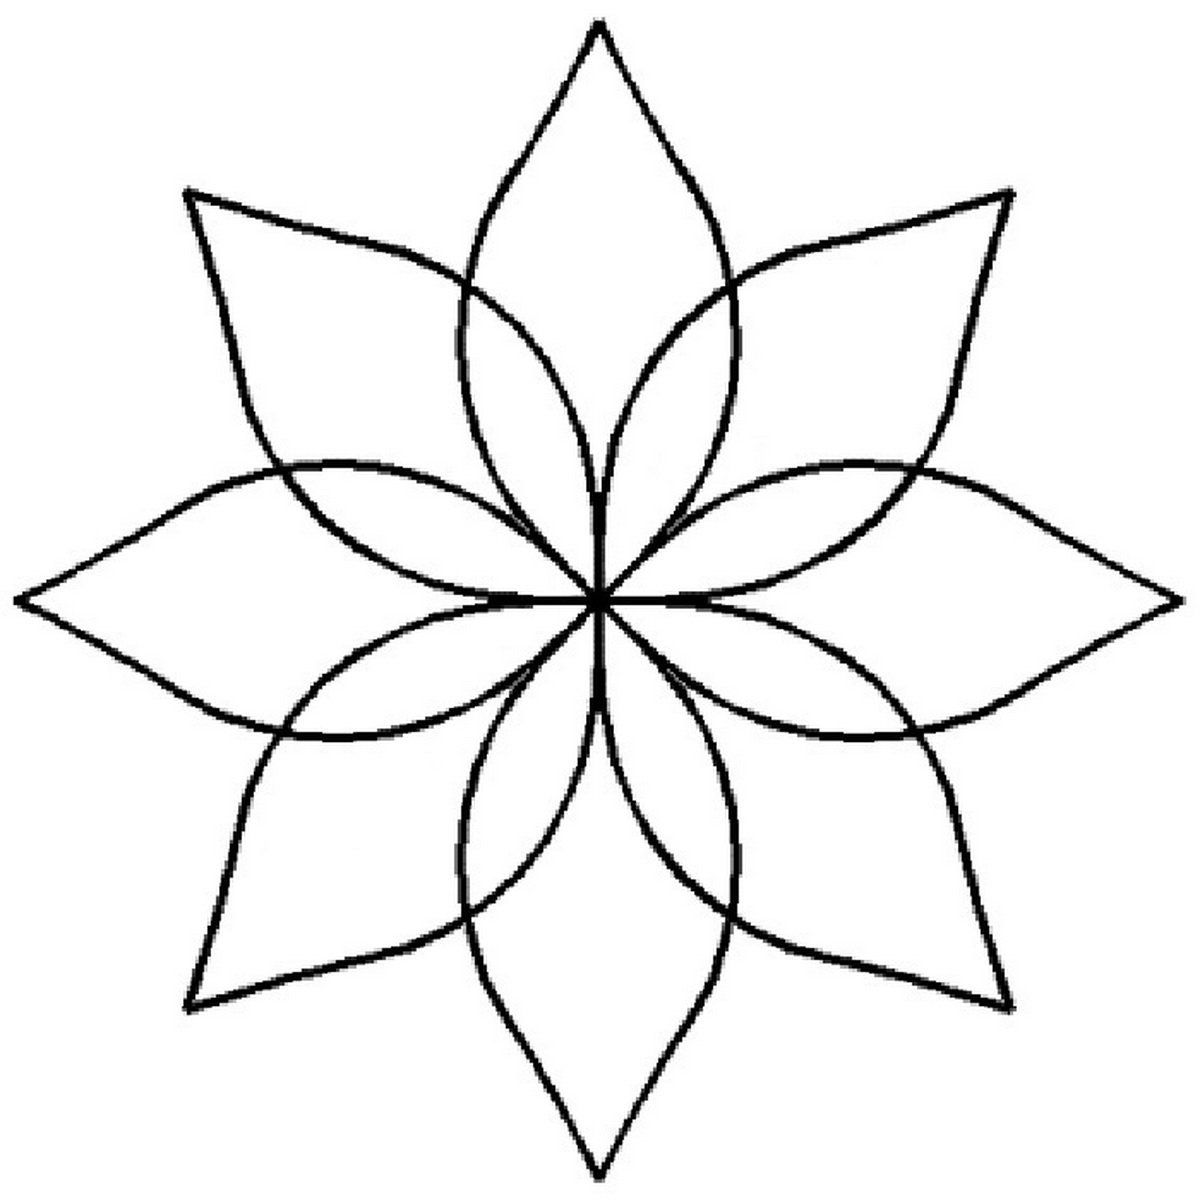 Water Lily Stencil Black And White: Lily Pad Template - Google Search